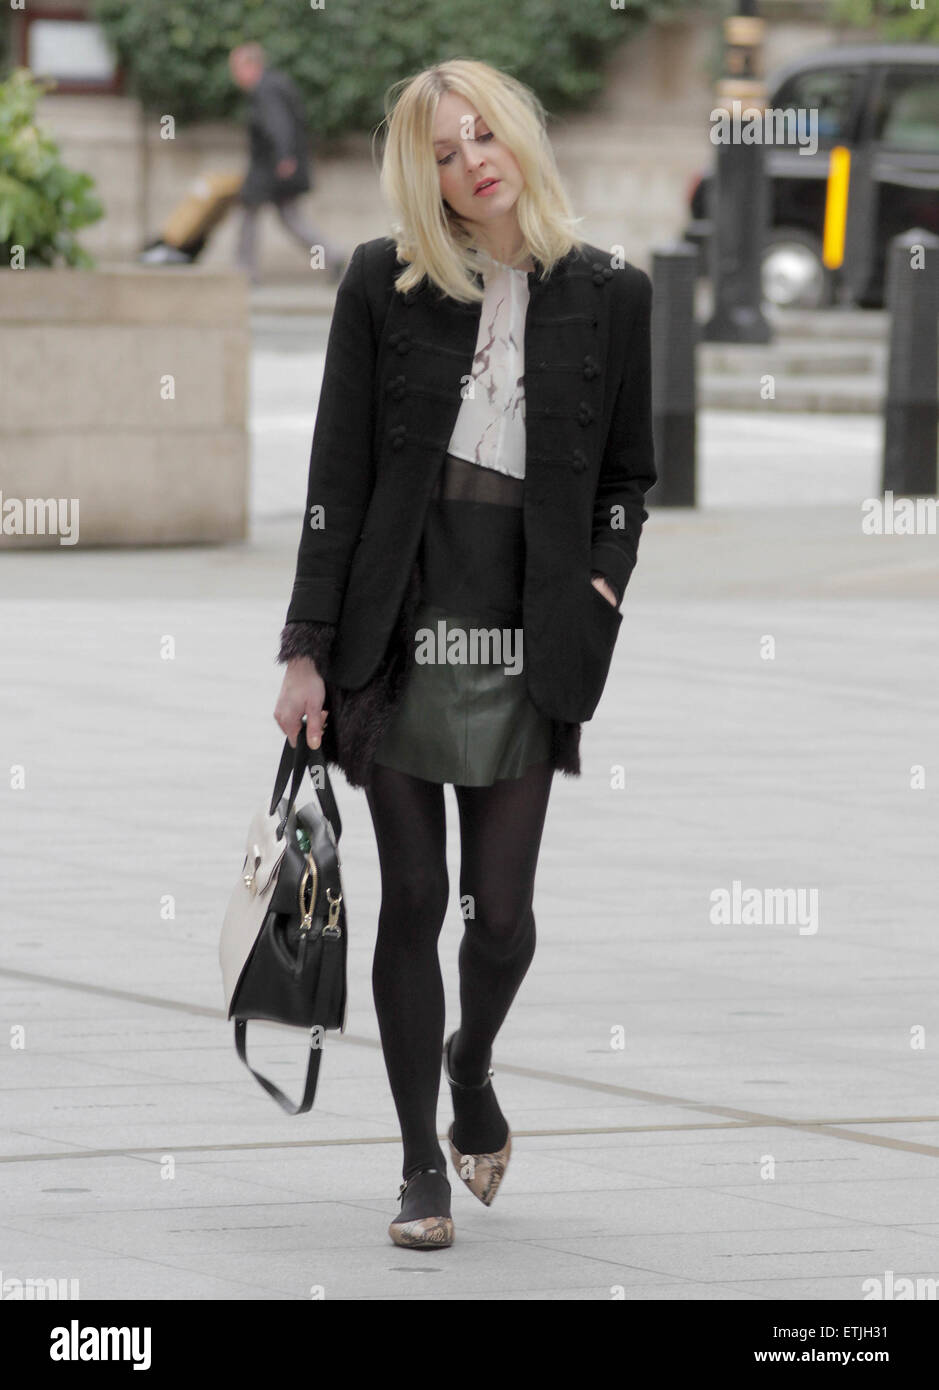 febf77f1ac5d62 Fearne Cotton arriving at the BBC Radio 1 studios Featuring  Fearne Cotton  Where  London